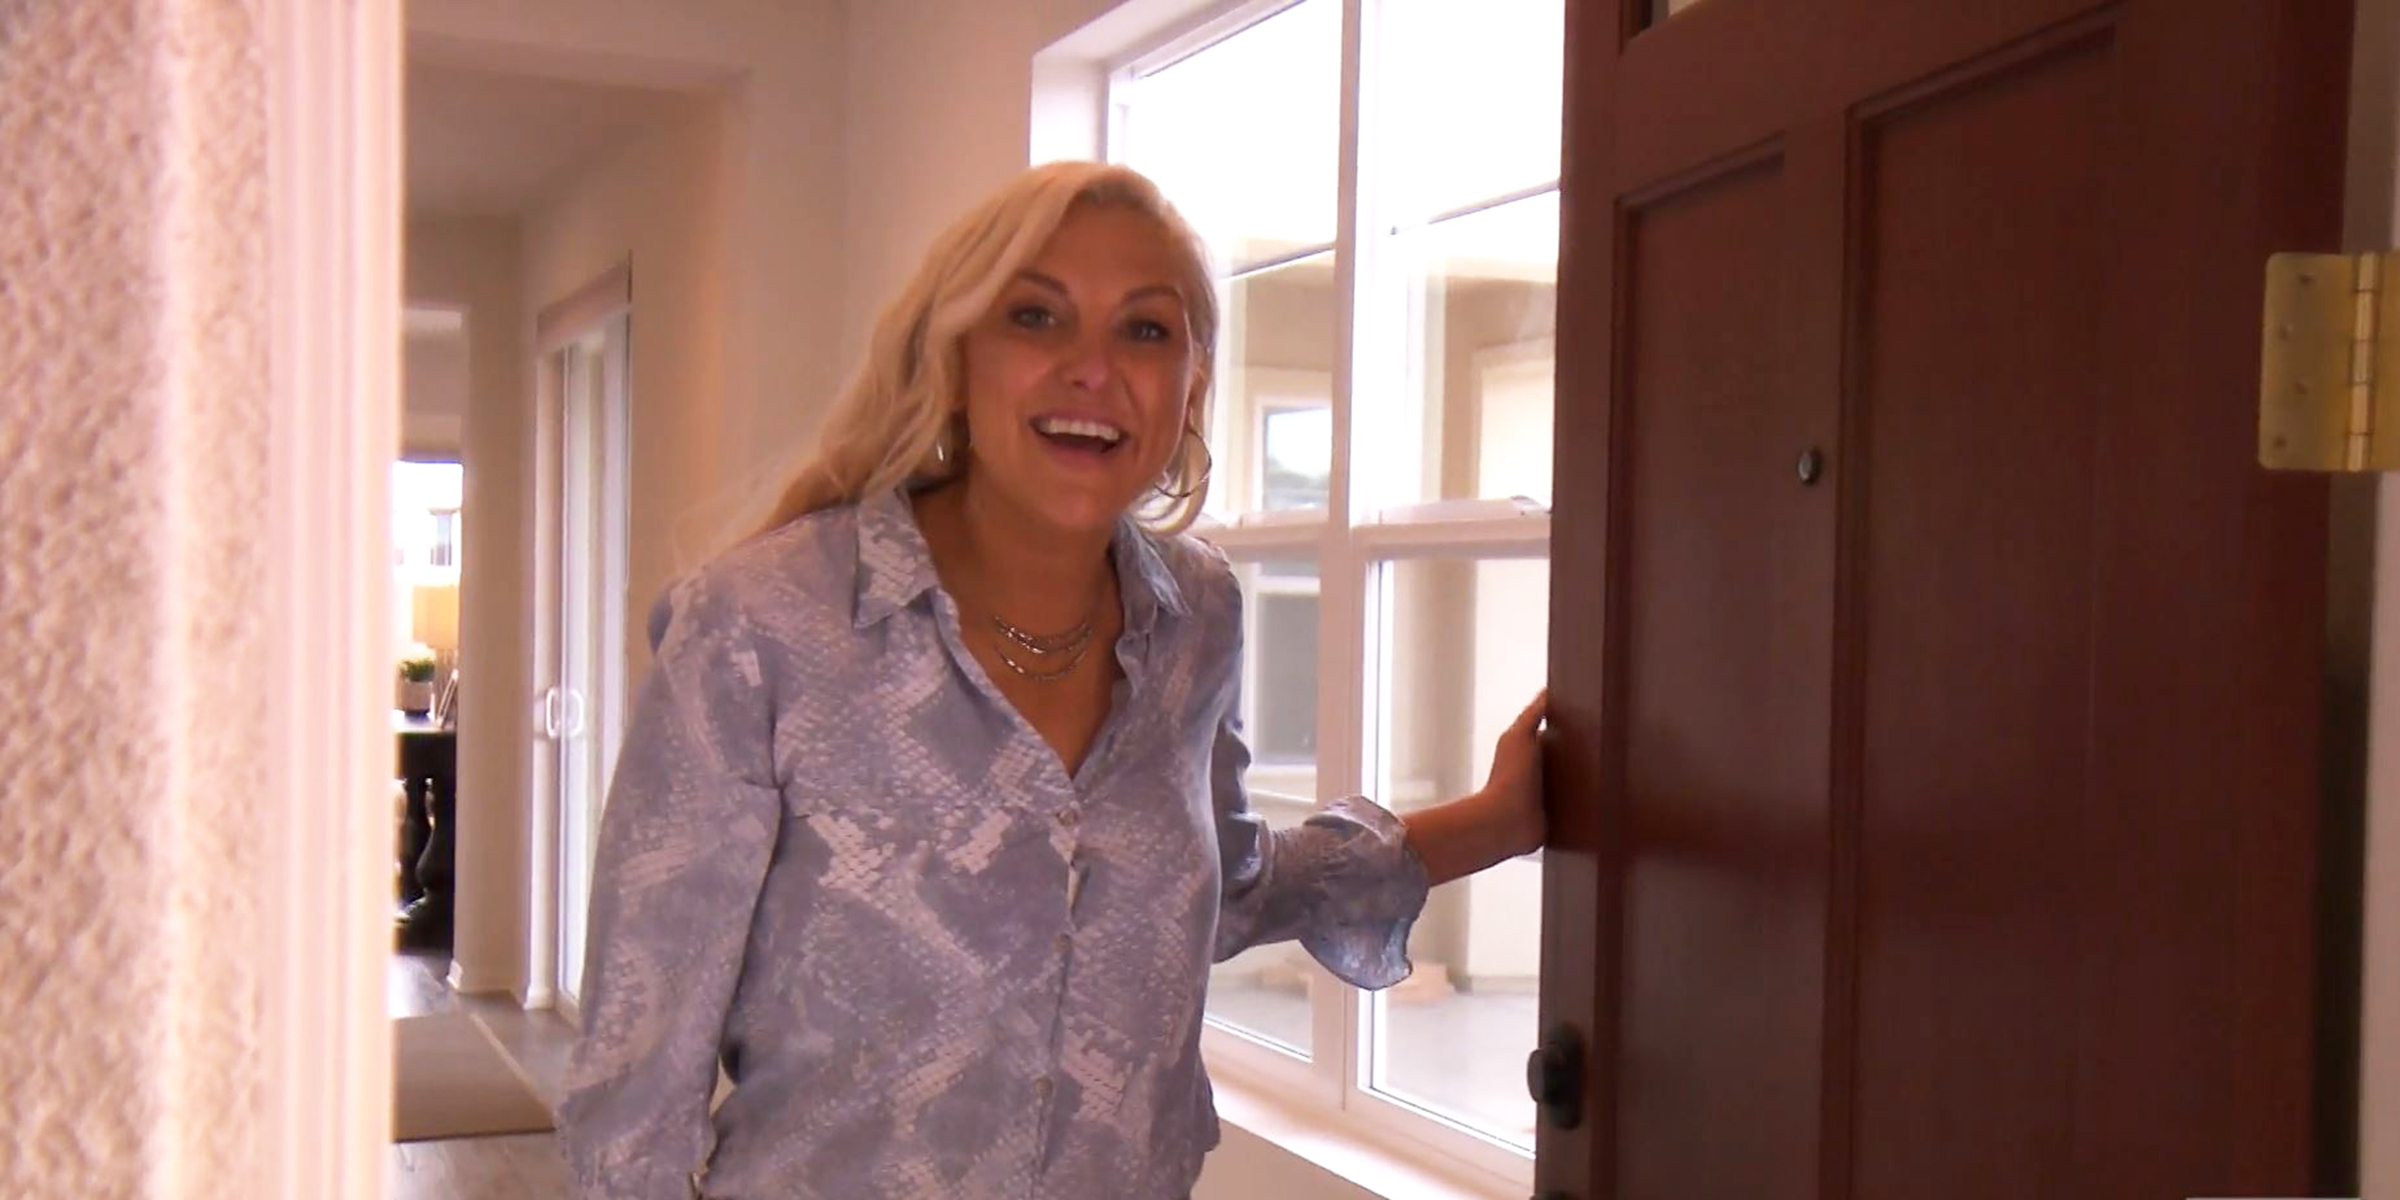 Watch 'Real Housewives' star Gina Kirschenheiter's tour of her post-breakup house